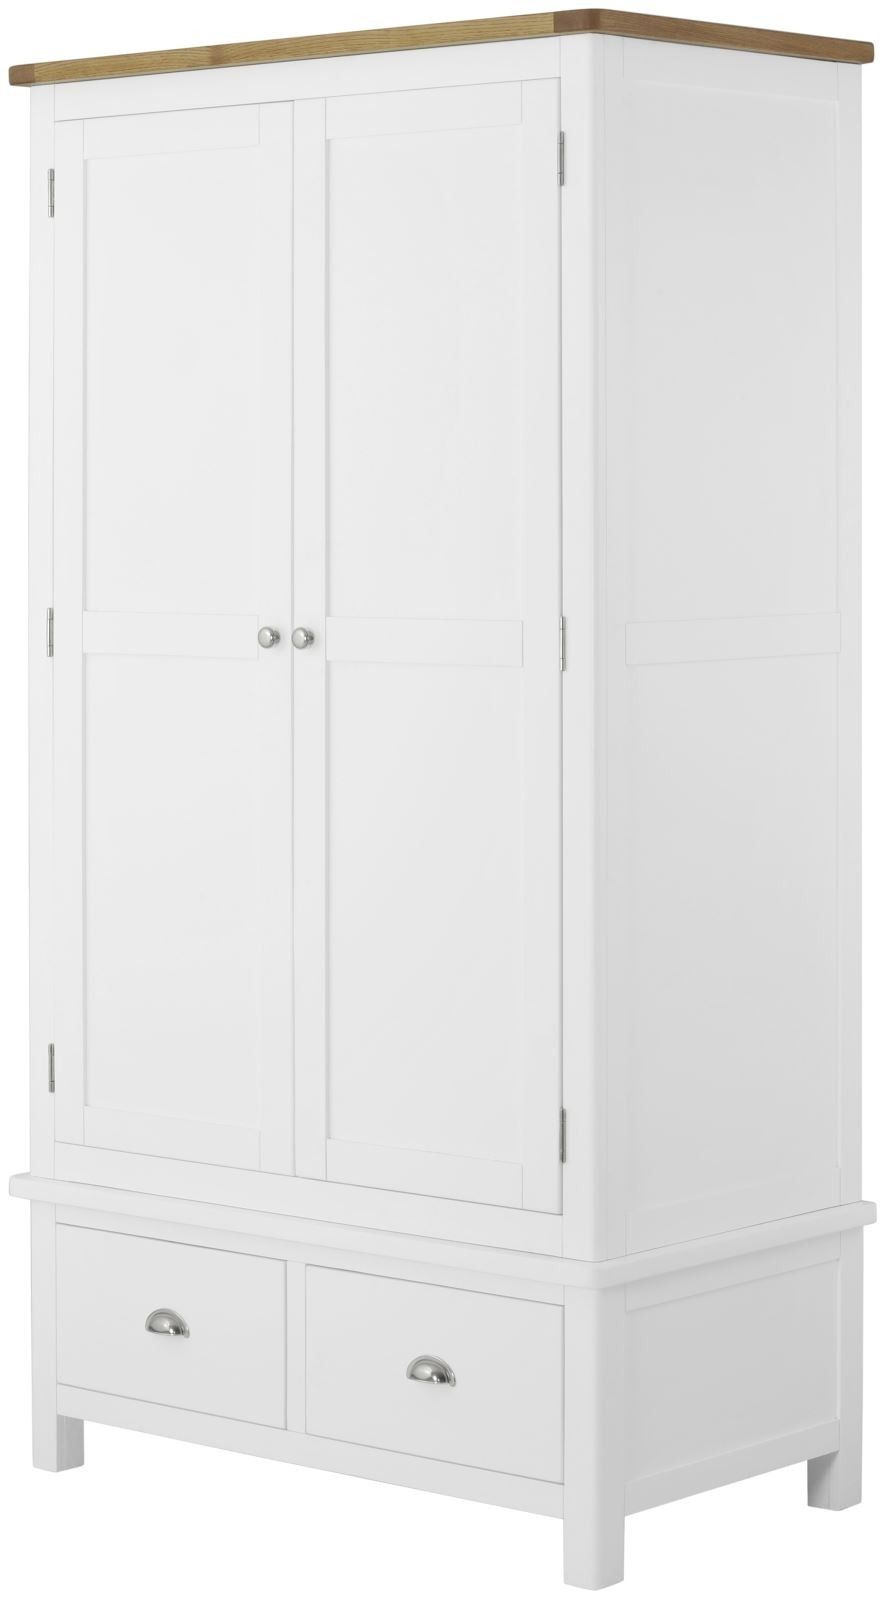 Purbeck Painted 2 Door 2 Drawer Wardrobe - White